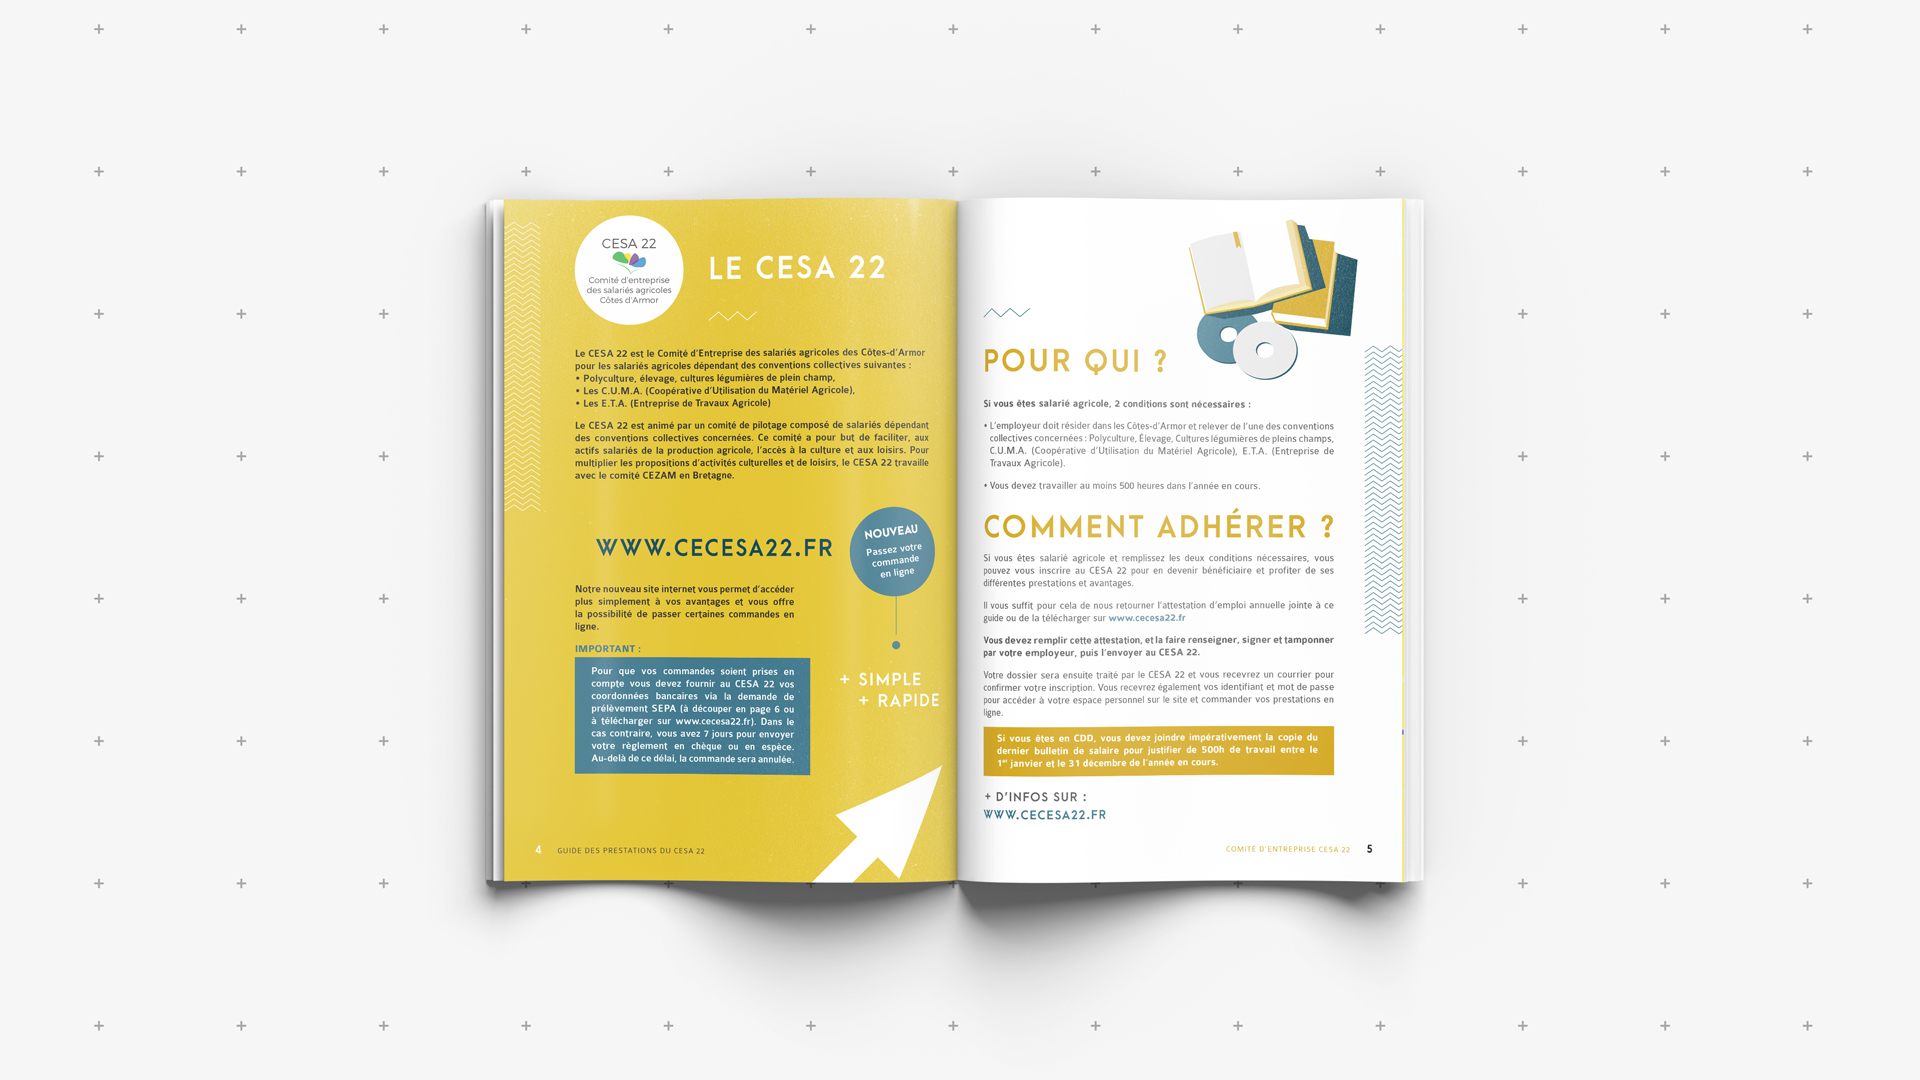 Cesa 22 communication by Agence Cqoueliko